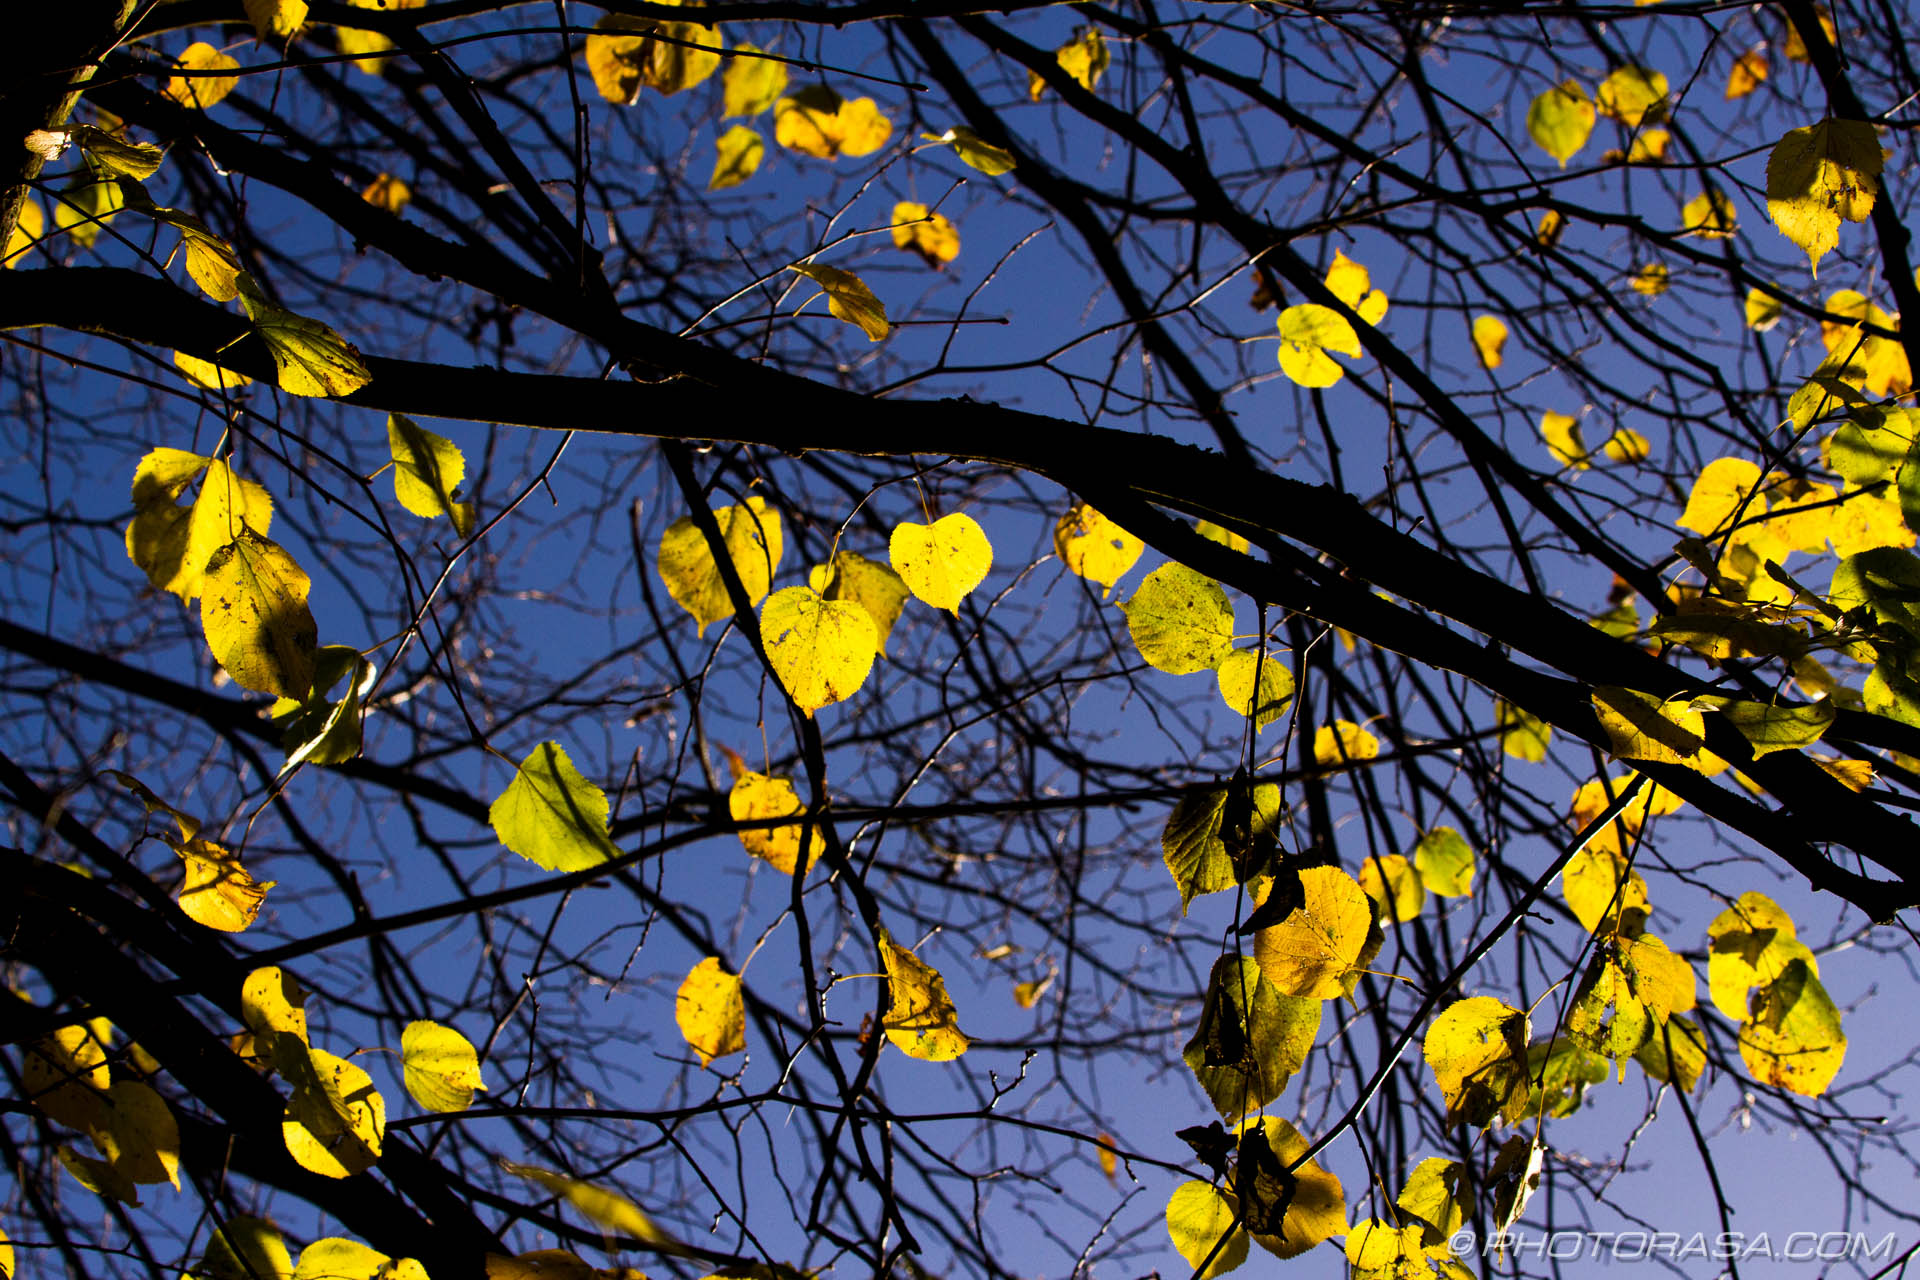 https://photorasa.com/leaves/yellow-leaves-on-the-tree-hit-by-sunlight/